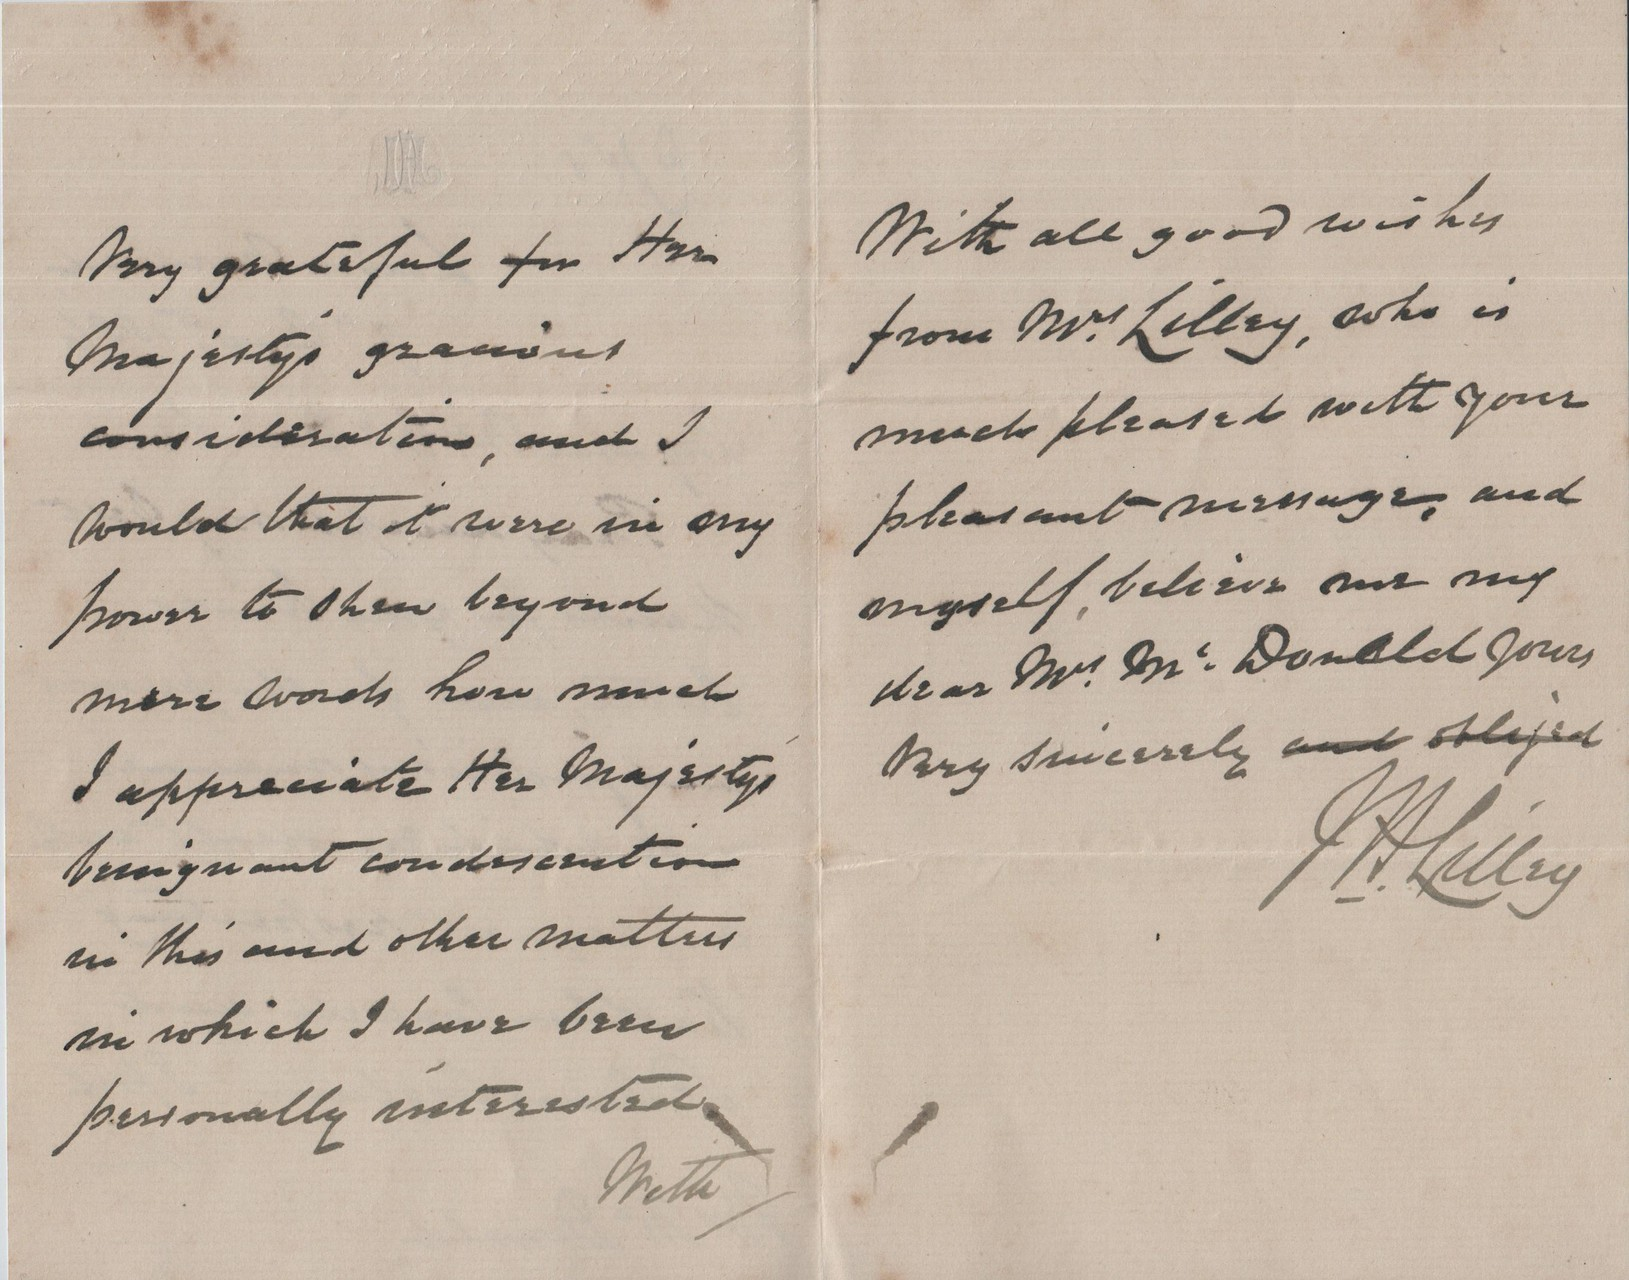 1886 August 7th JHL to AMcD